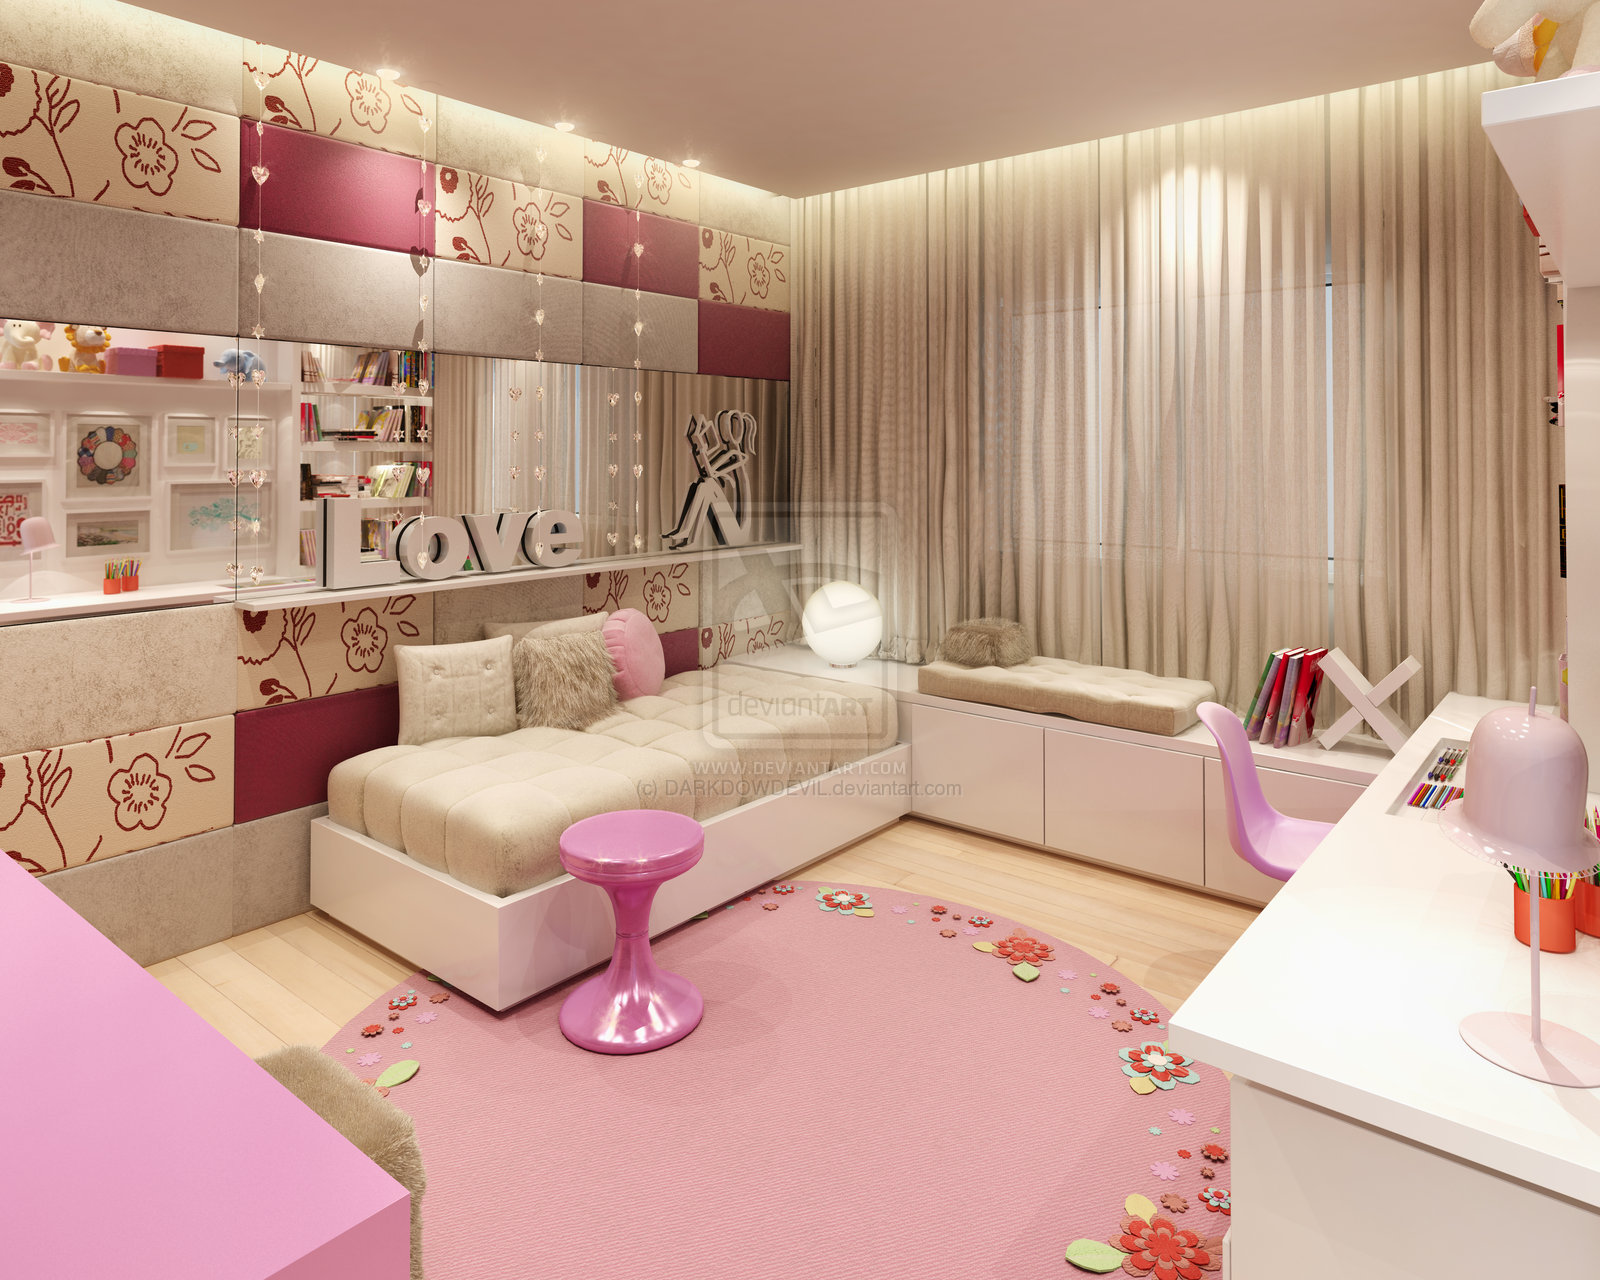 Teenage room designs Bedroom ideas for small rooms teenage girls